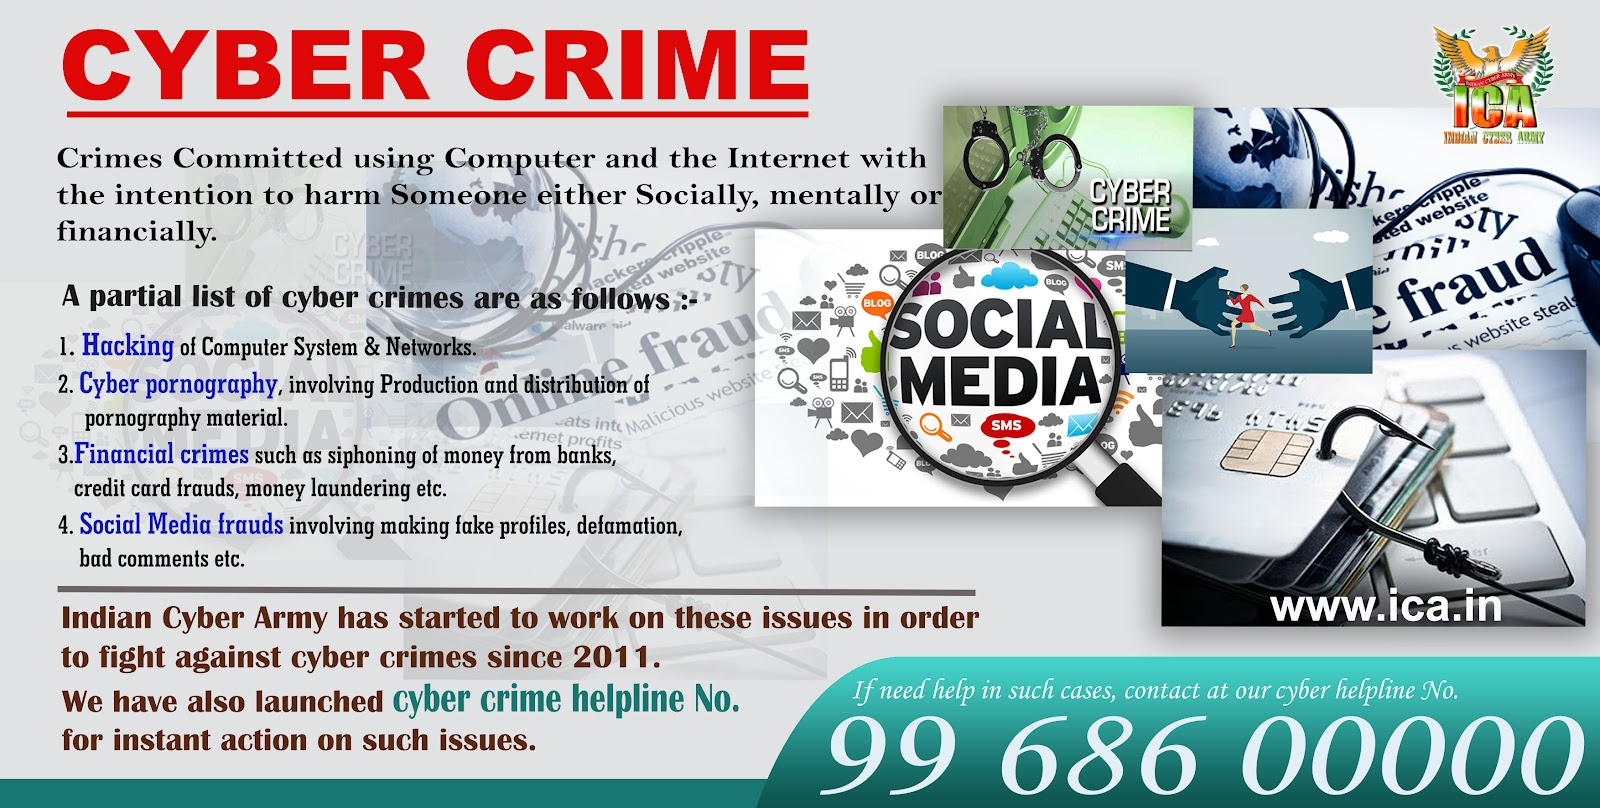 the abuse of identity theft and child soliciting either as cyber crime or non cyber crime The 12 types of cyber crime in order to protect yourself you need to know about the different ways in which your computer can be compromised and your privacy infringed.